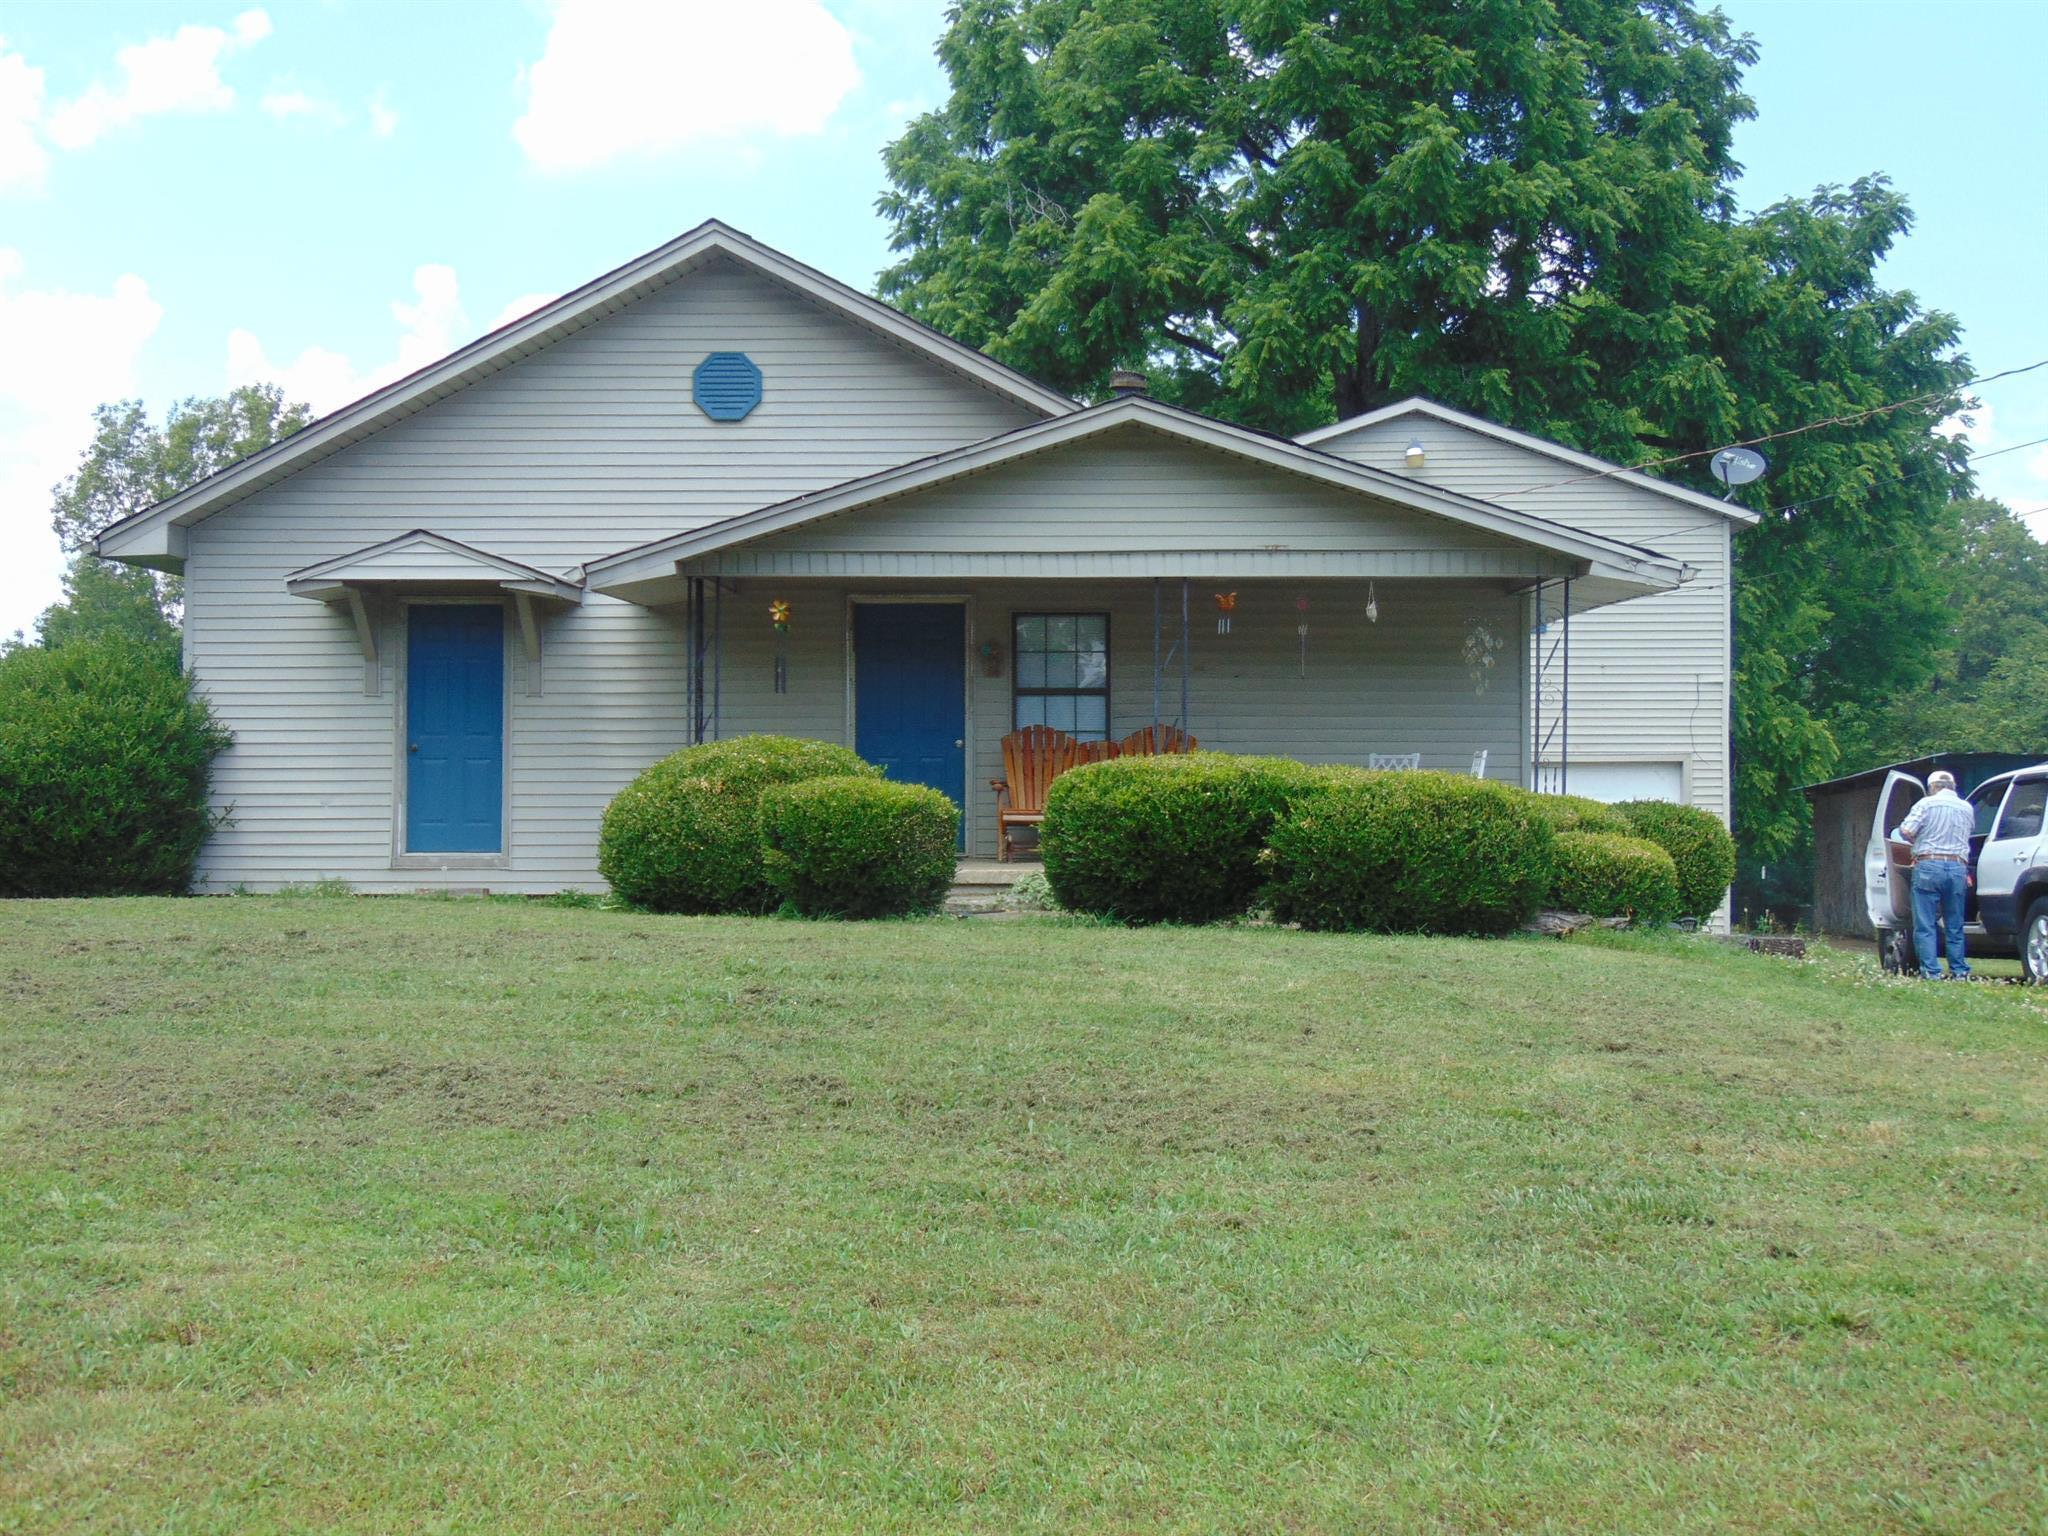 411 2Nd Ave S, Loretto, TN 38469 - Loretto, TN real estate listing